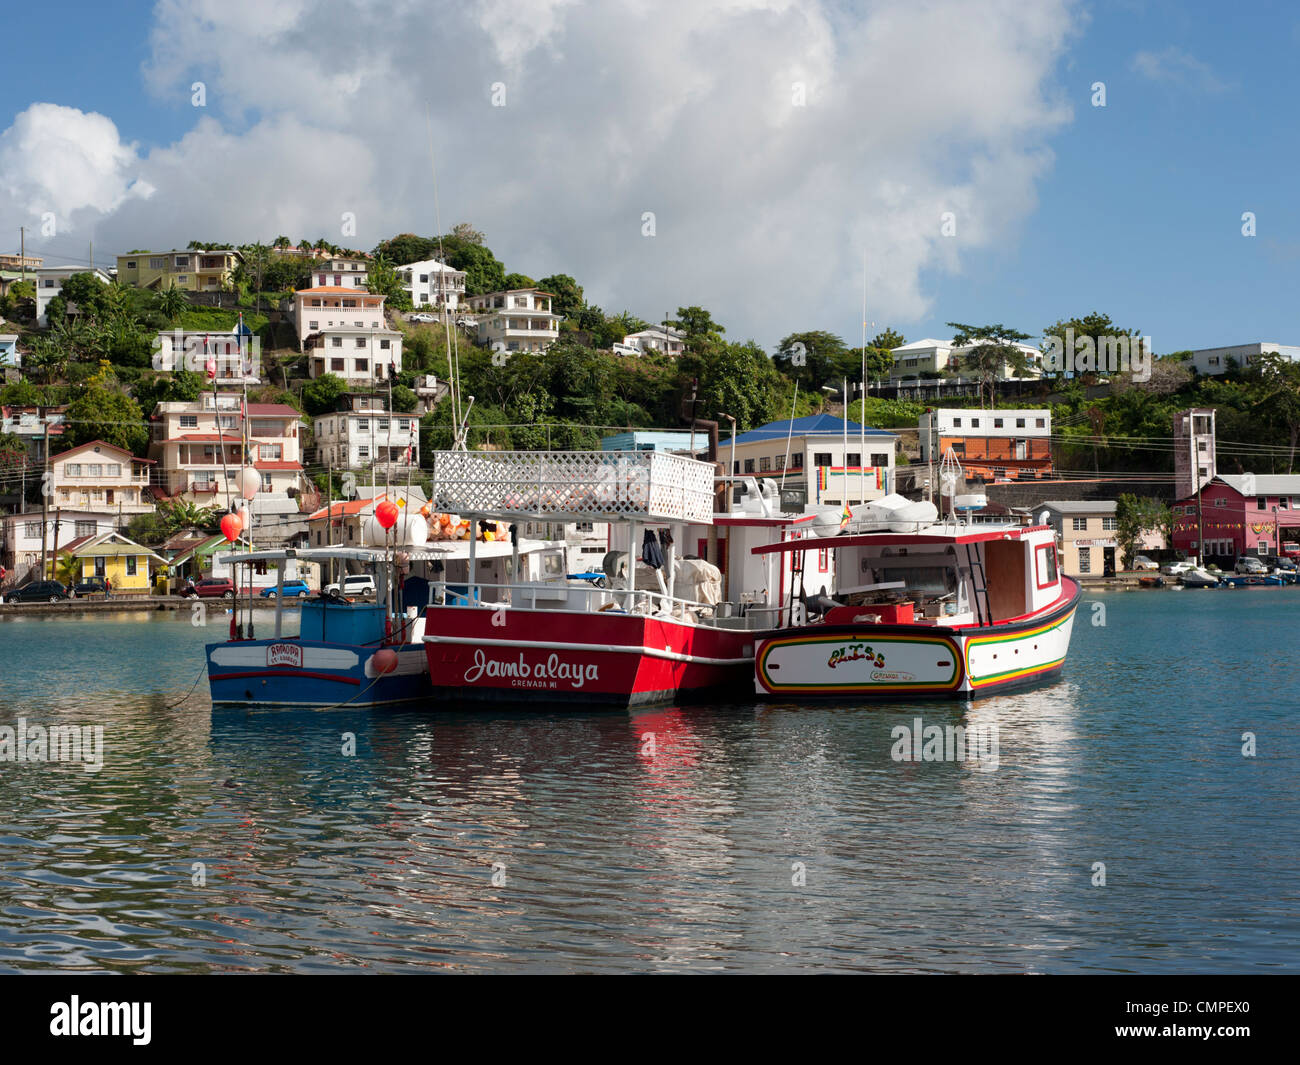 A view of the harbour in St. George's, Grenada Stock Photo